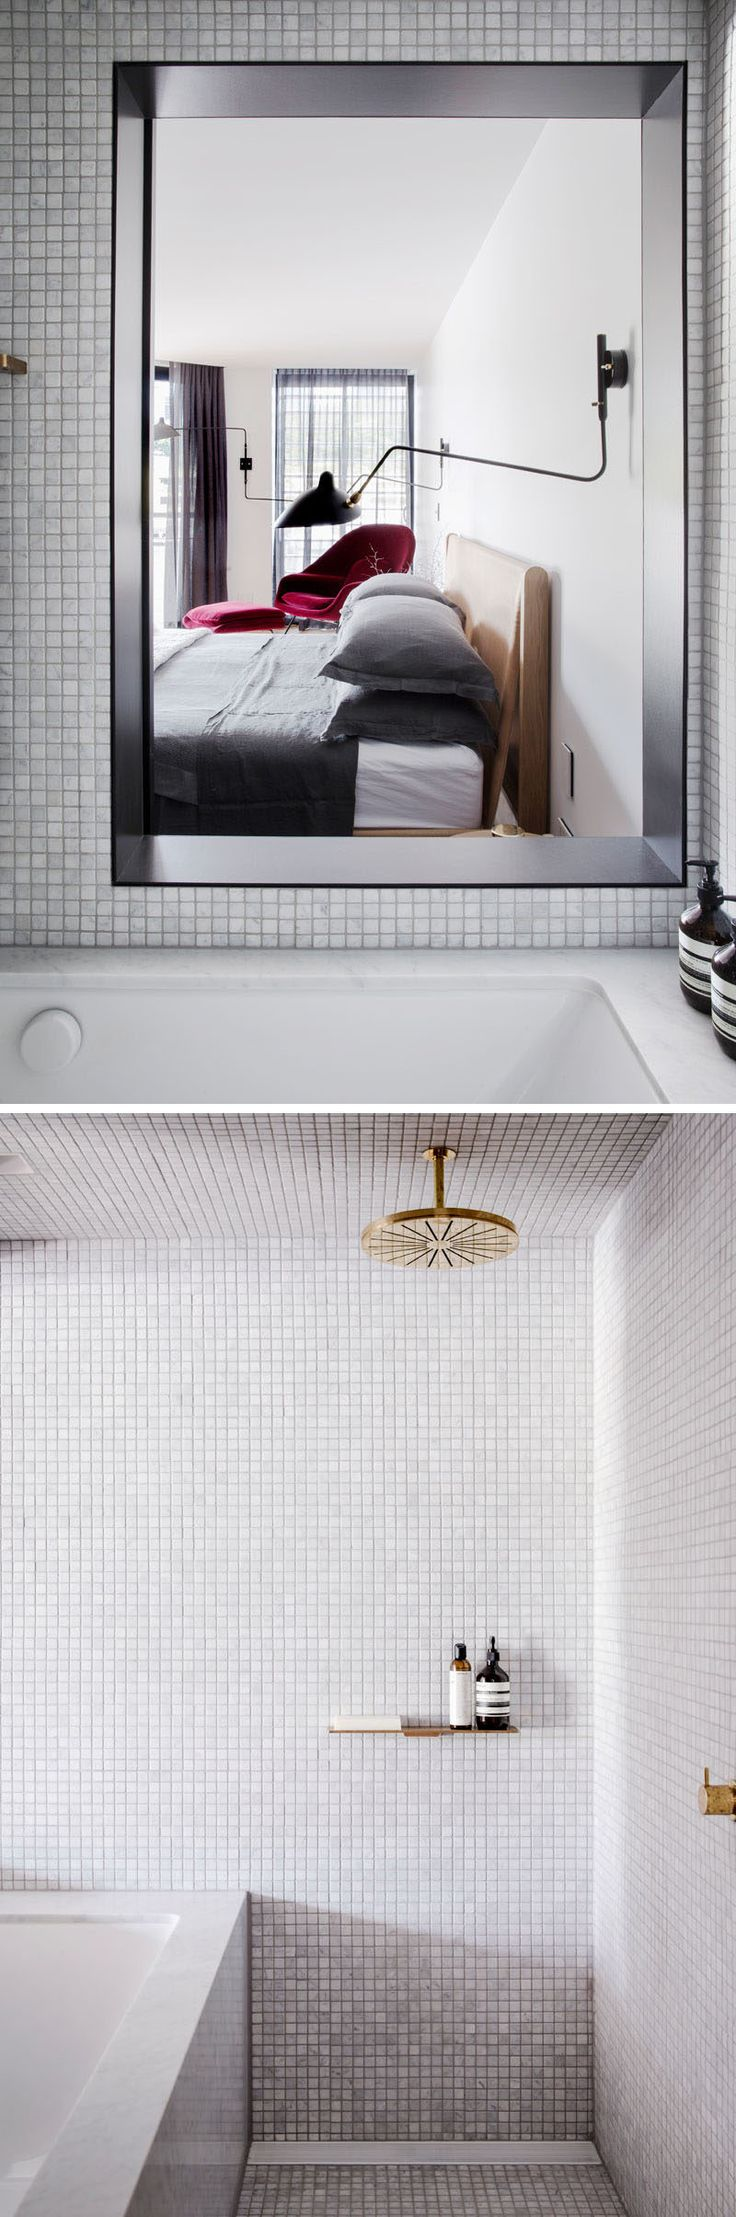 This modern bathroom has a partially open wall next to the bath to allow natural light from the bedroom to fill the space. Light grey tiles and gold hardware have been used to keep the space bright.